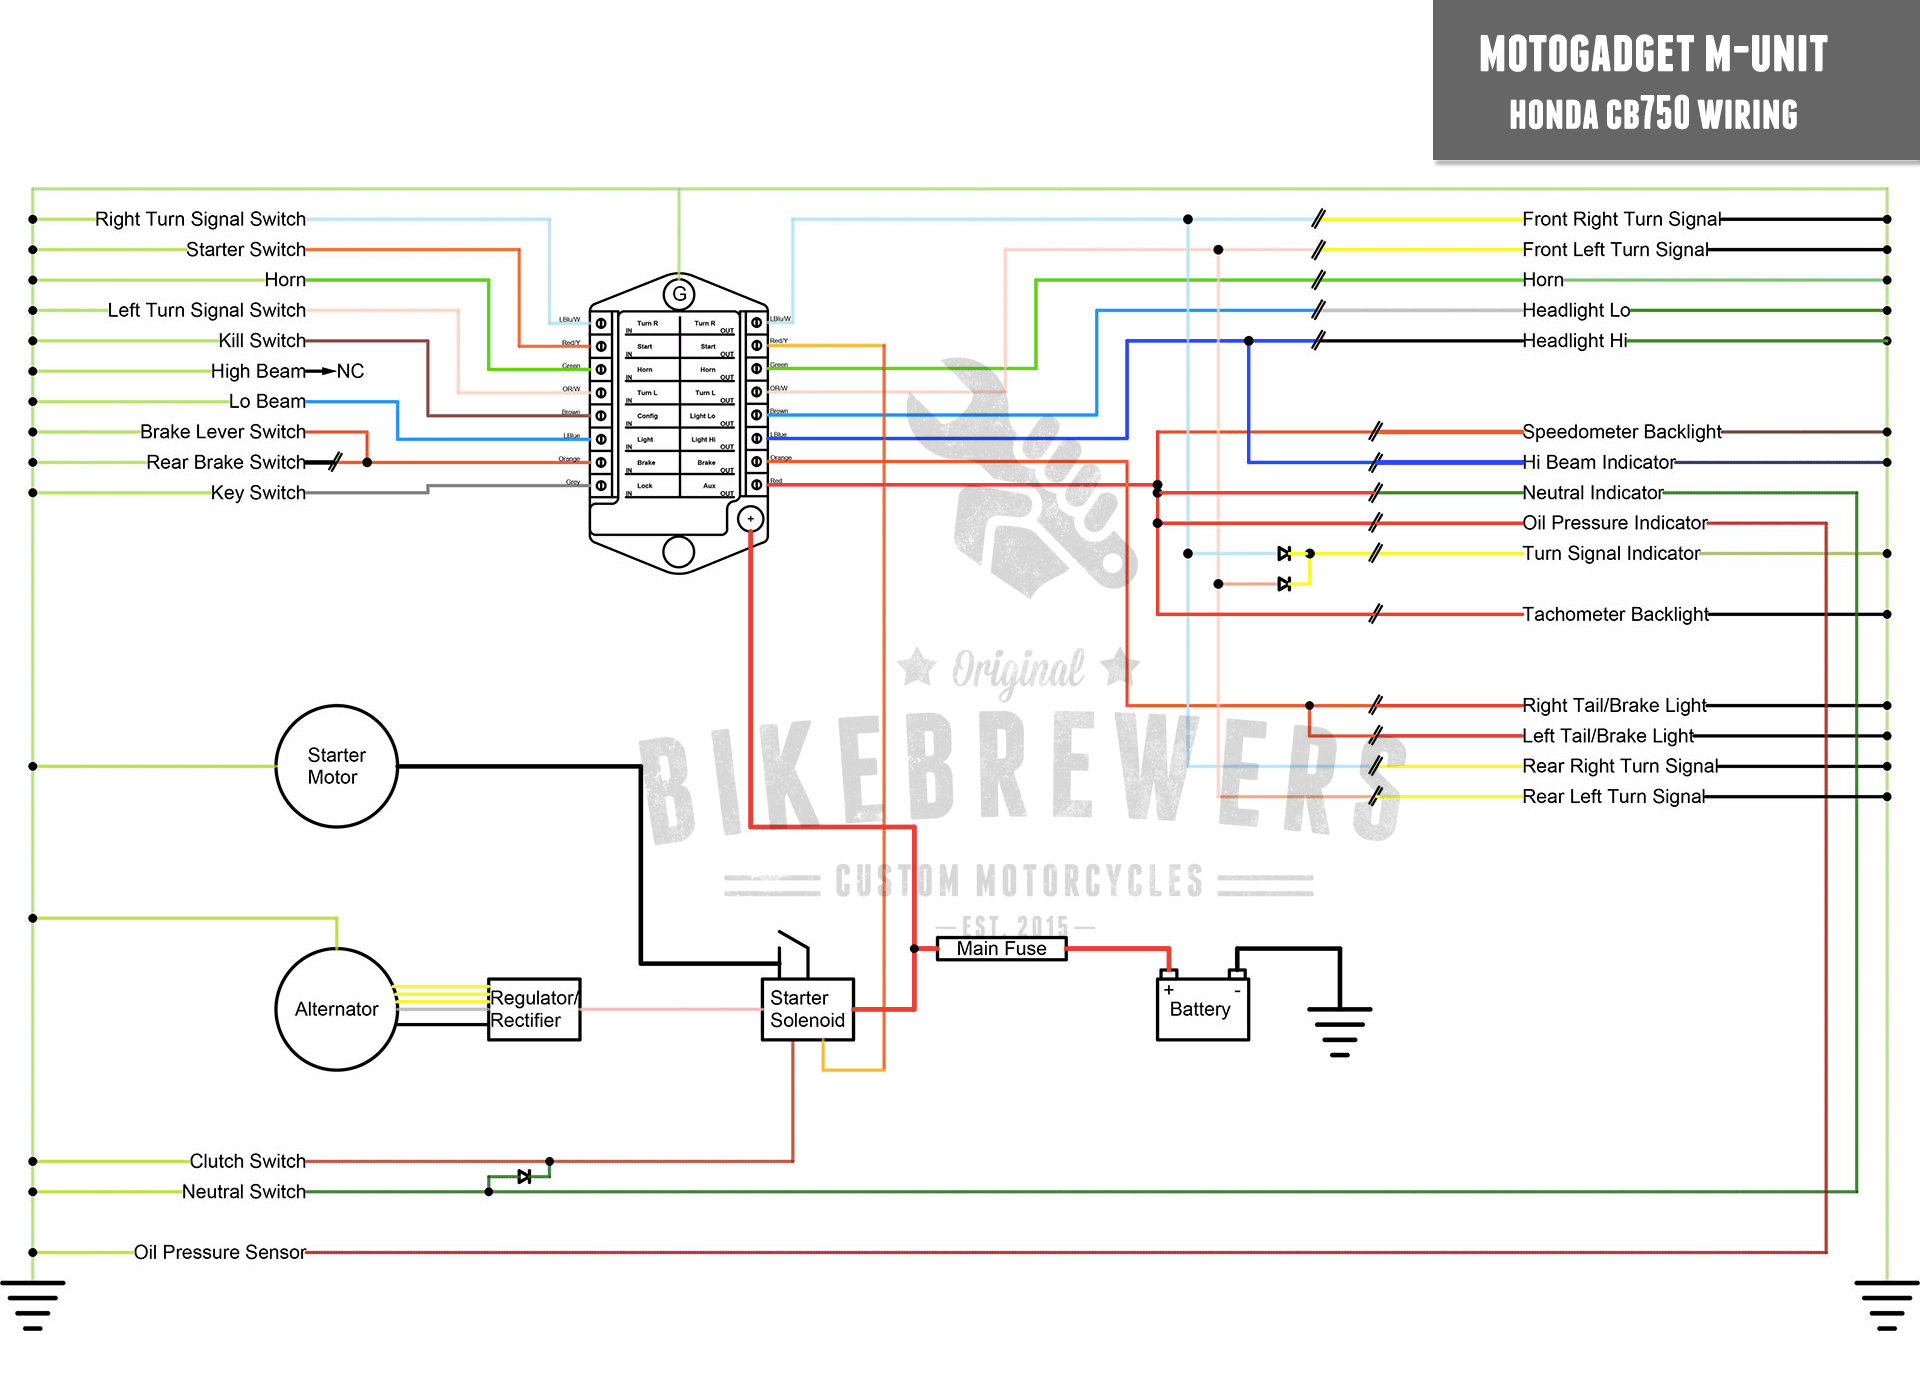 MotoGadget Wiring Honda CB750 motogadget m unit wiring bikebrewers com honda shadow 750 wiring diagram at n-0.co